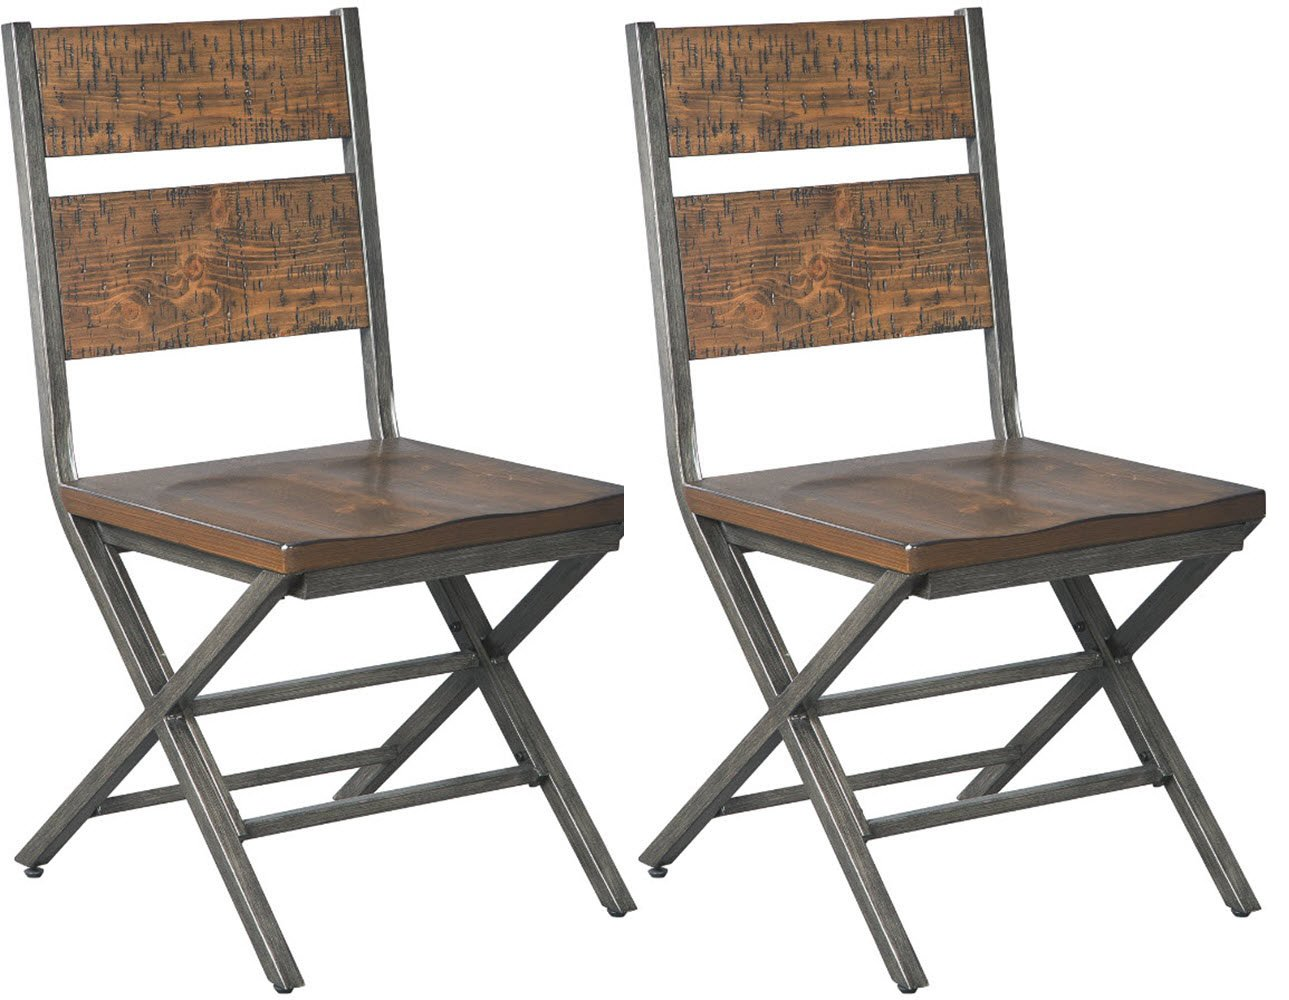 Signature Design by Ashley Kavara, Dining Chairs, Medium Brown